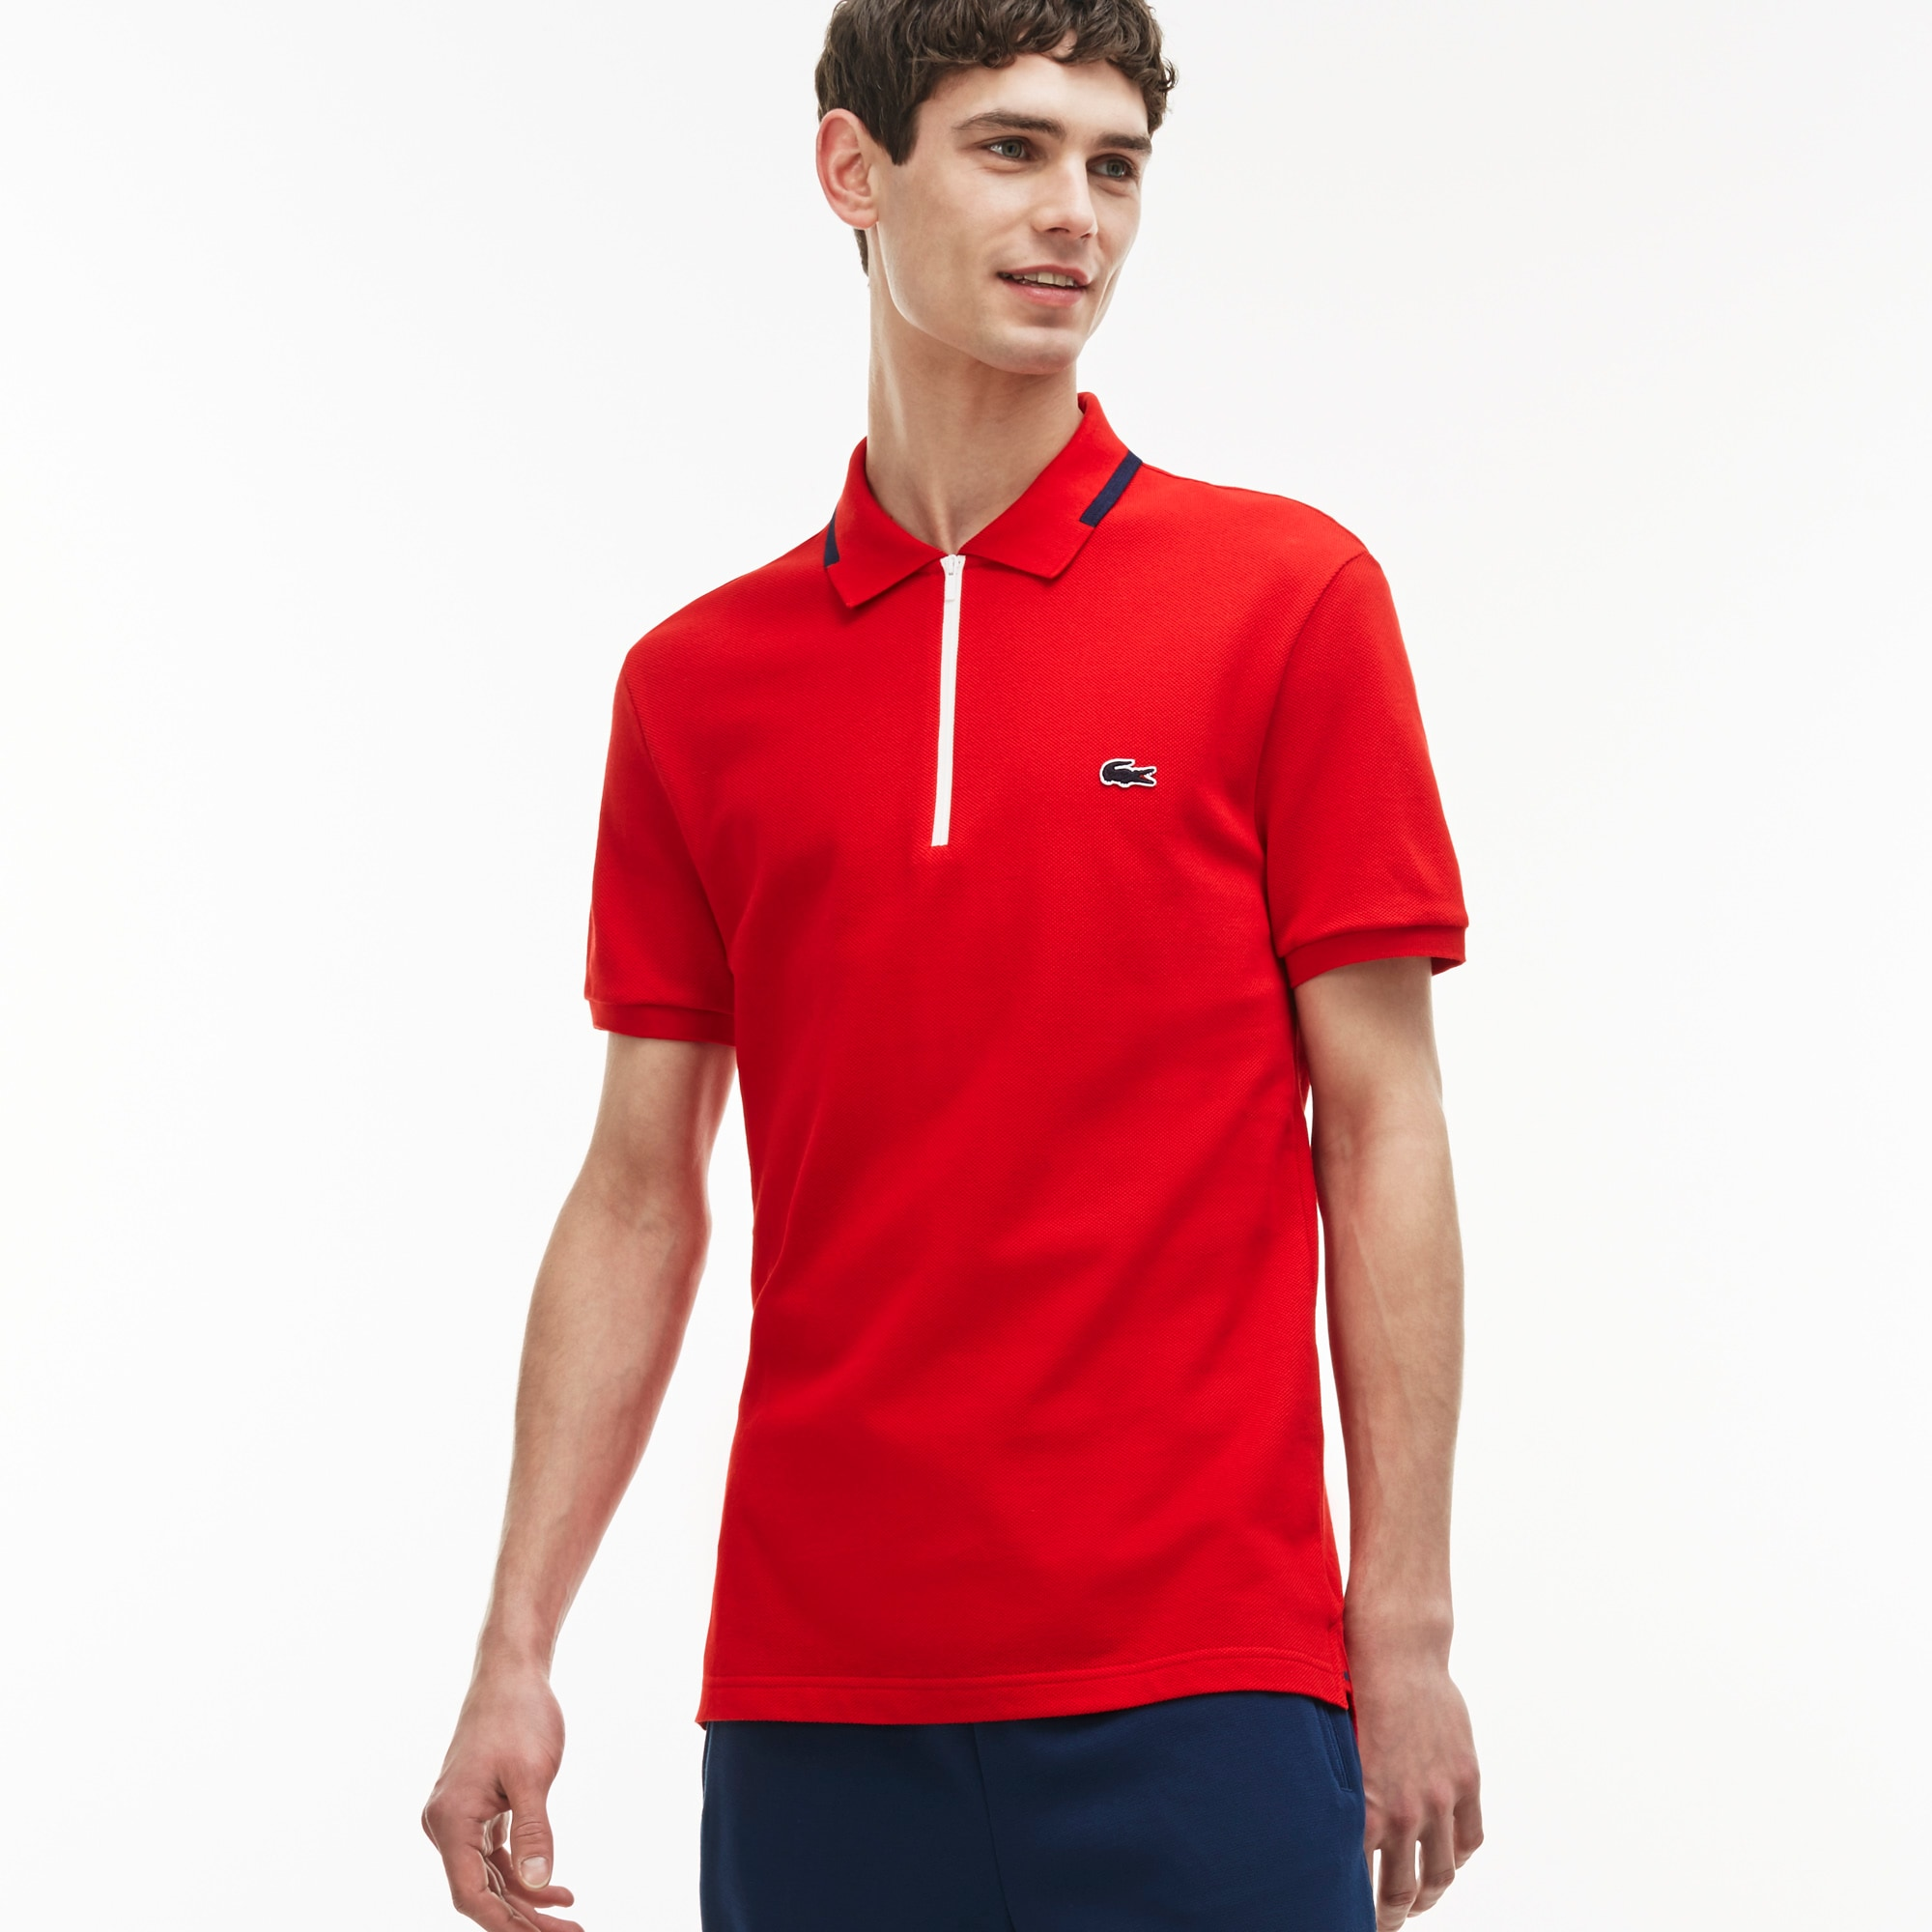 Men's Made in France Slim Fit Zippered Polo Shirt